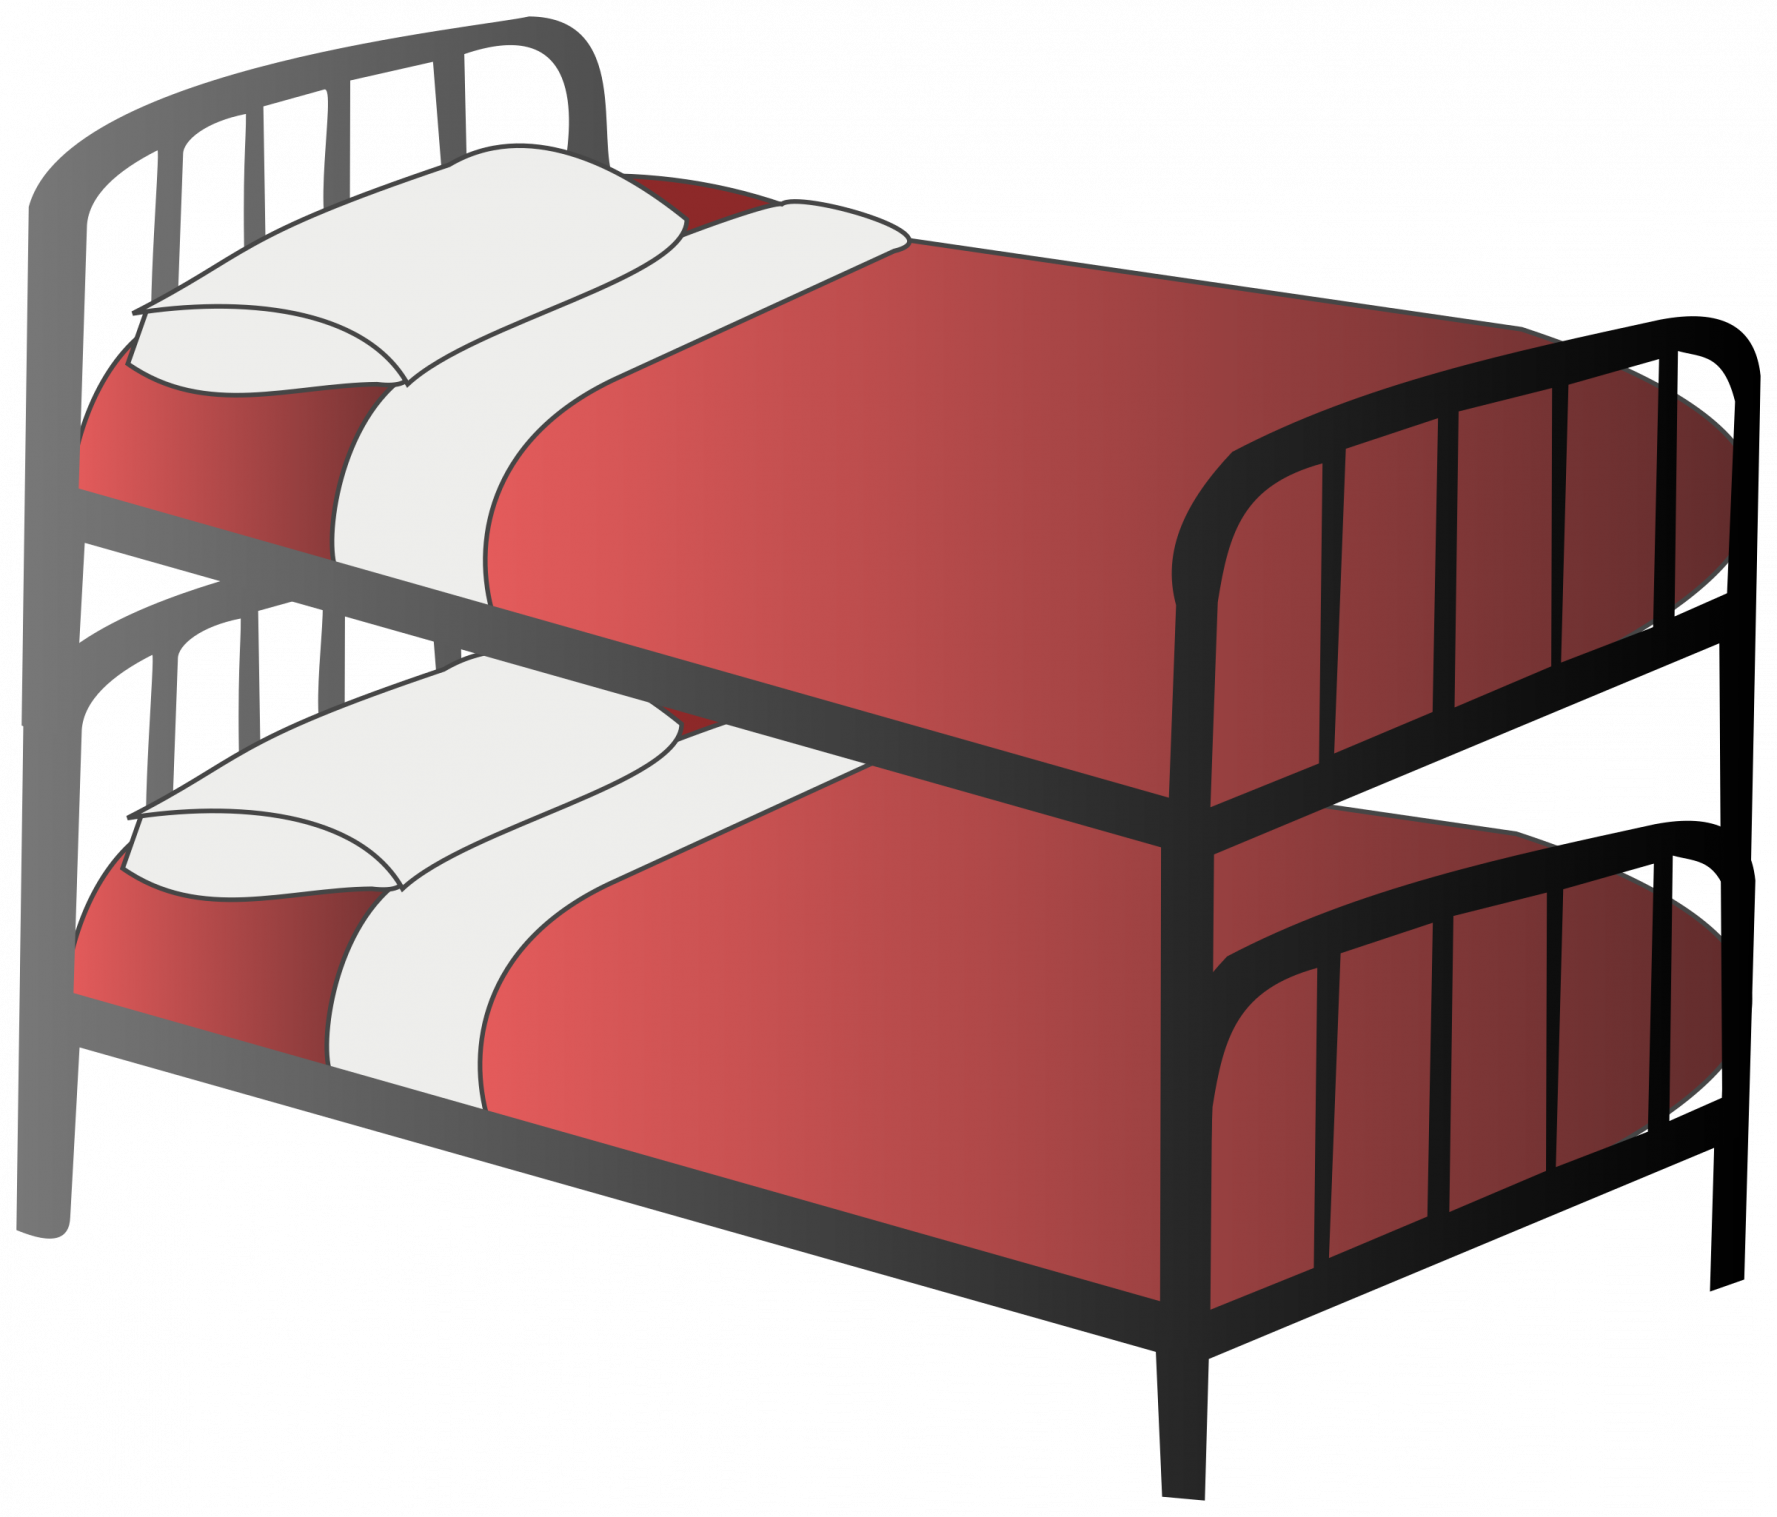 image free stock Bunk bed d redgorilla. Cartoon clipart bedroom.